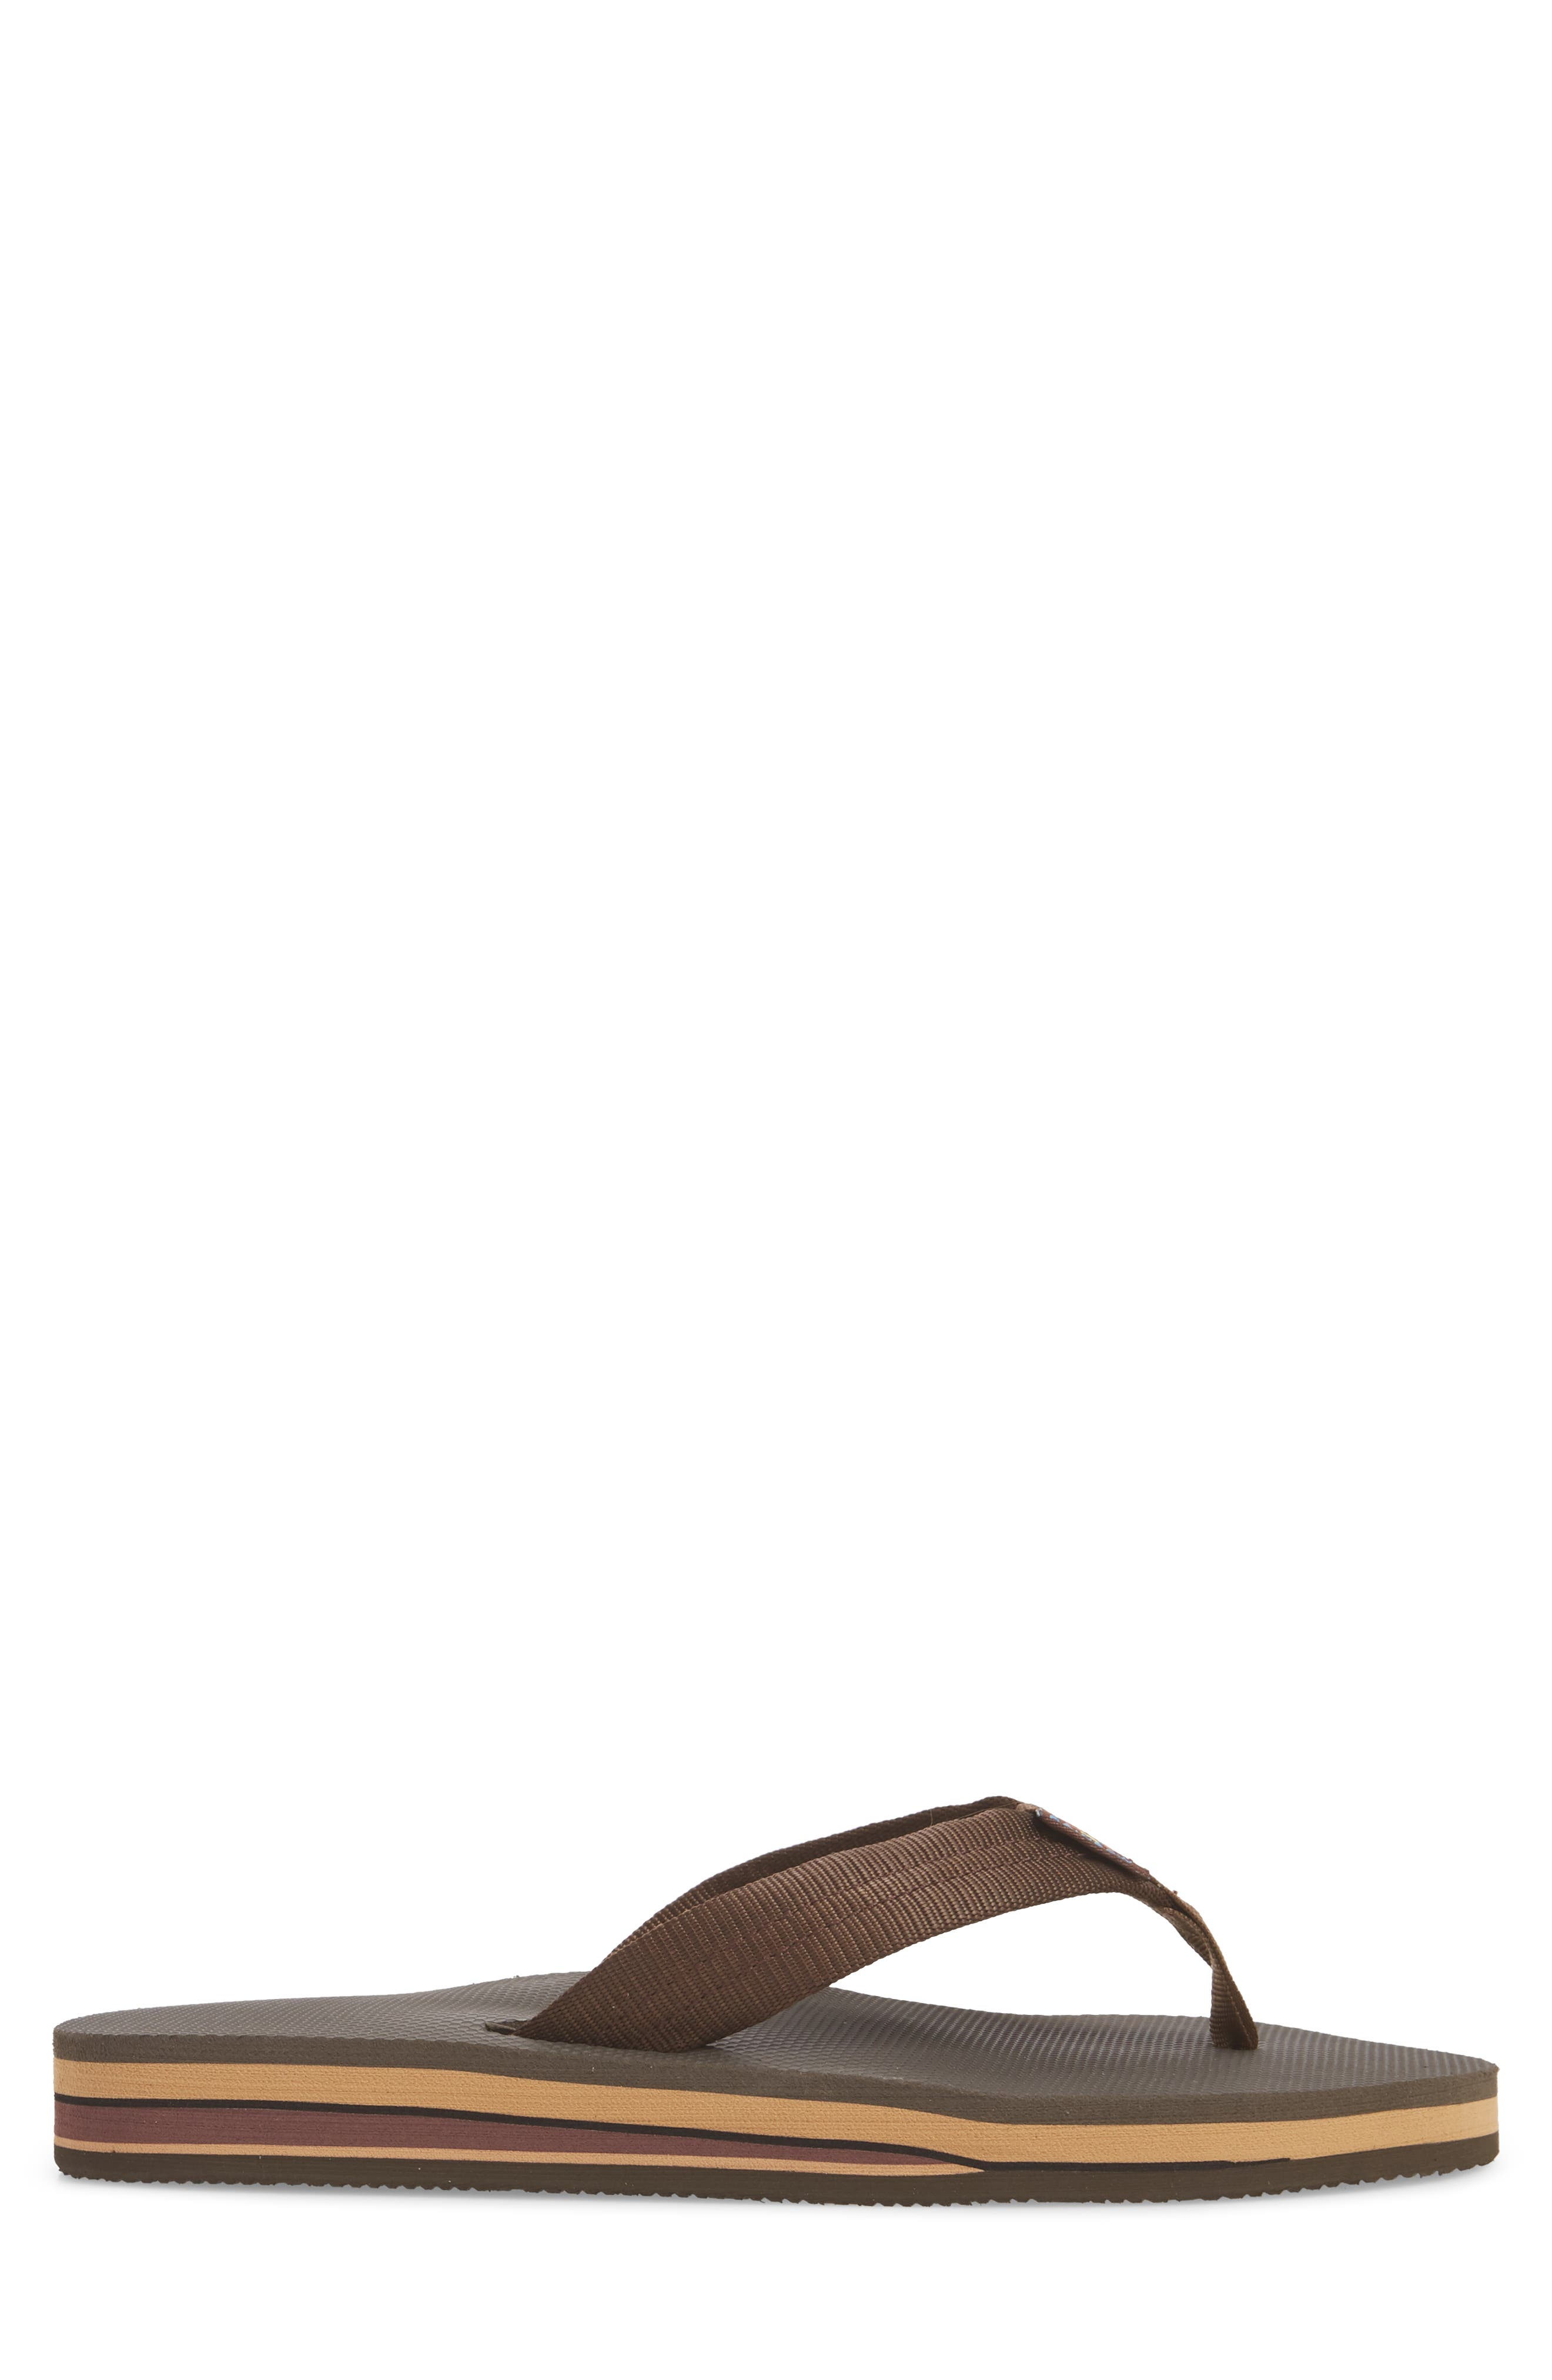 Double Layer Classic Flip Flop,                             Alternate thumbnail 3, color,                             Brown